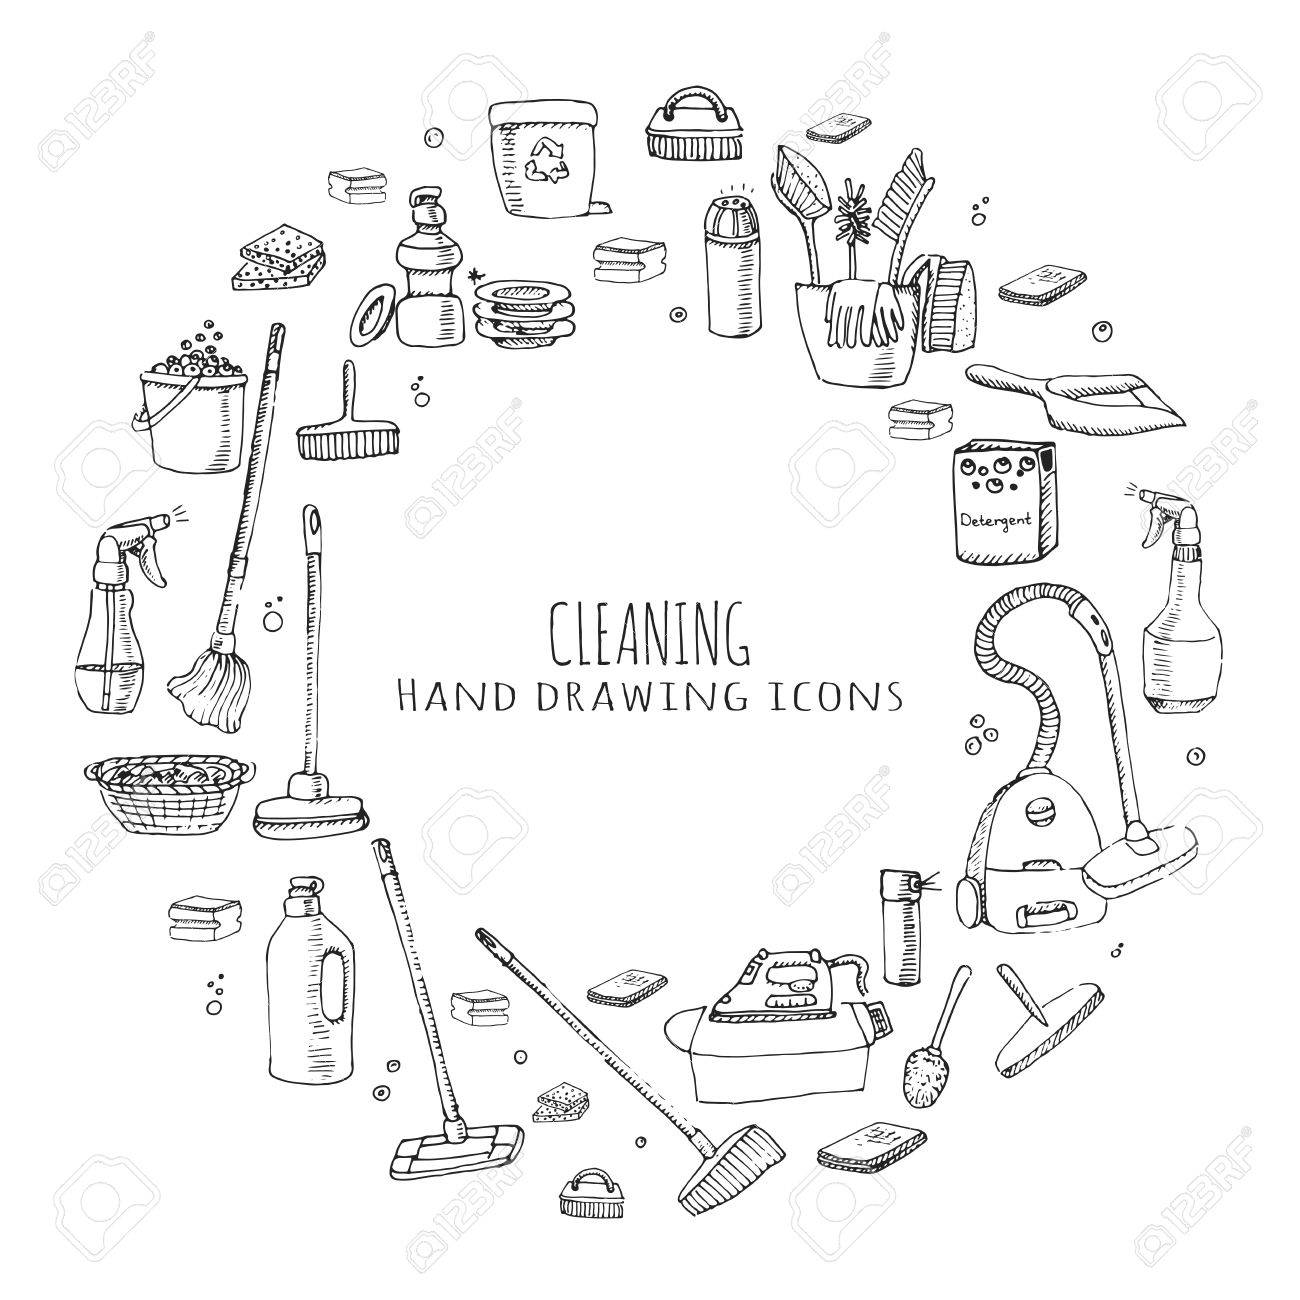 Hand Drawn Doodle Cleaning Service Icons Set Vector Illustration Symbols Tools Detergent